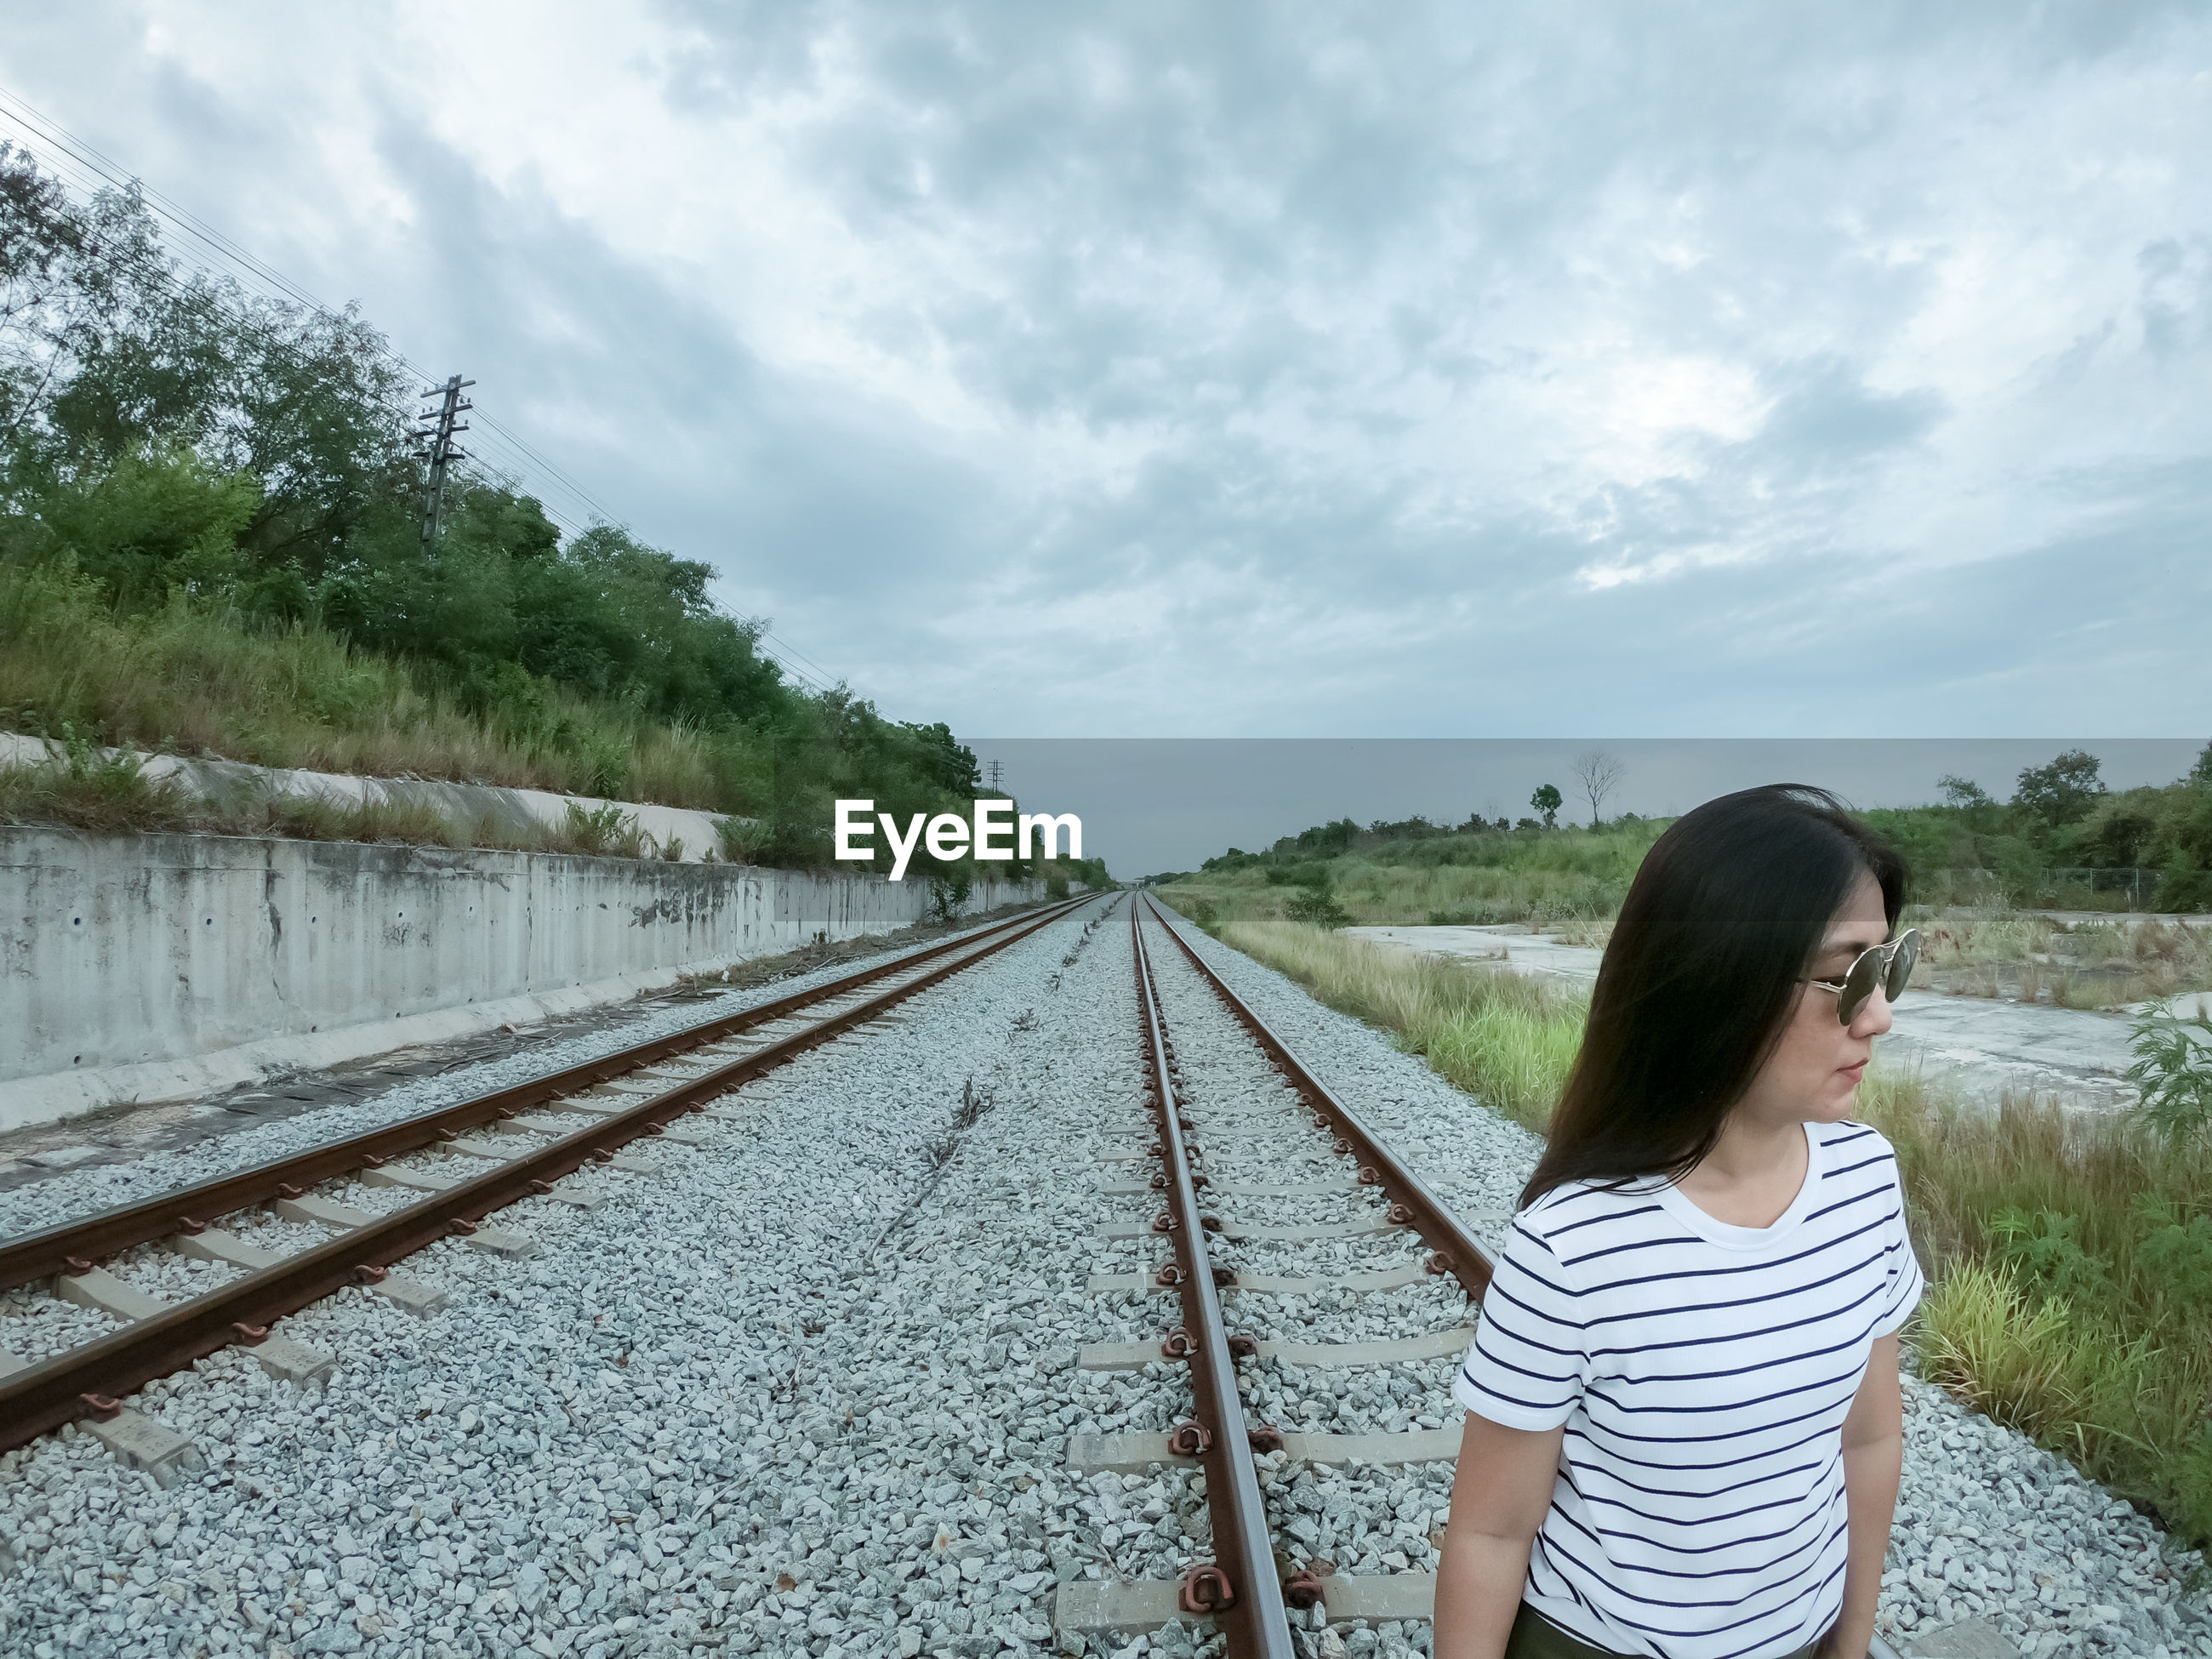 Woman looking away while standing on railroad track